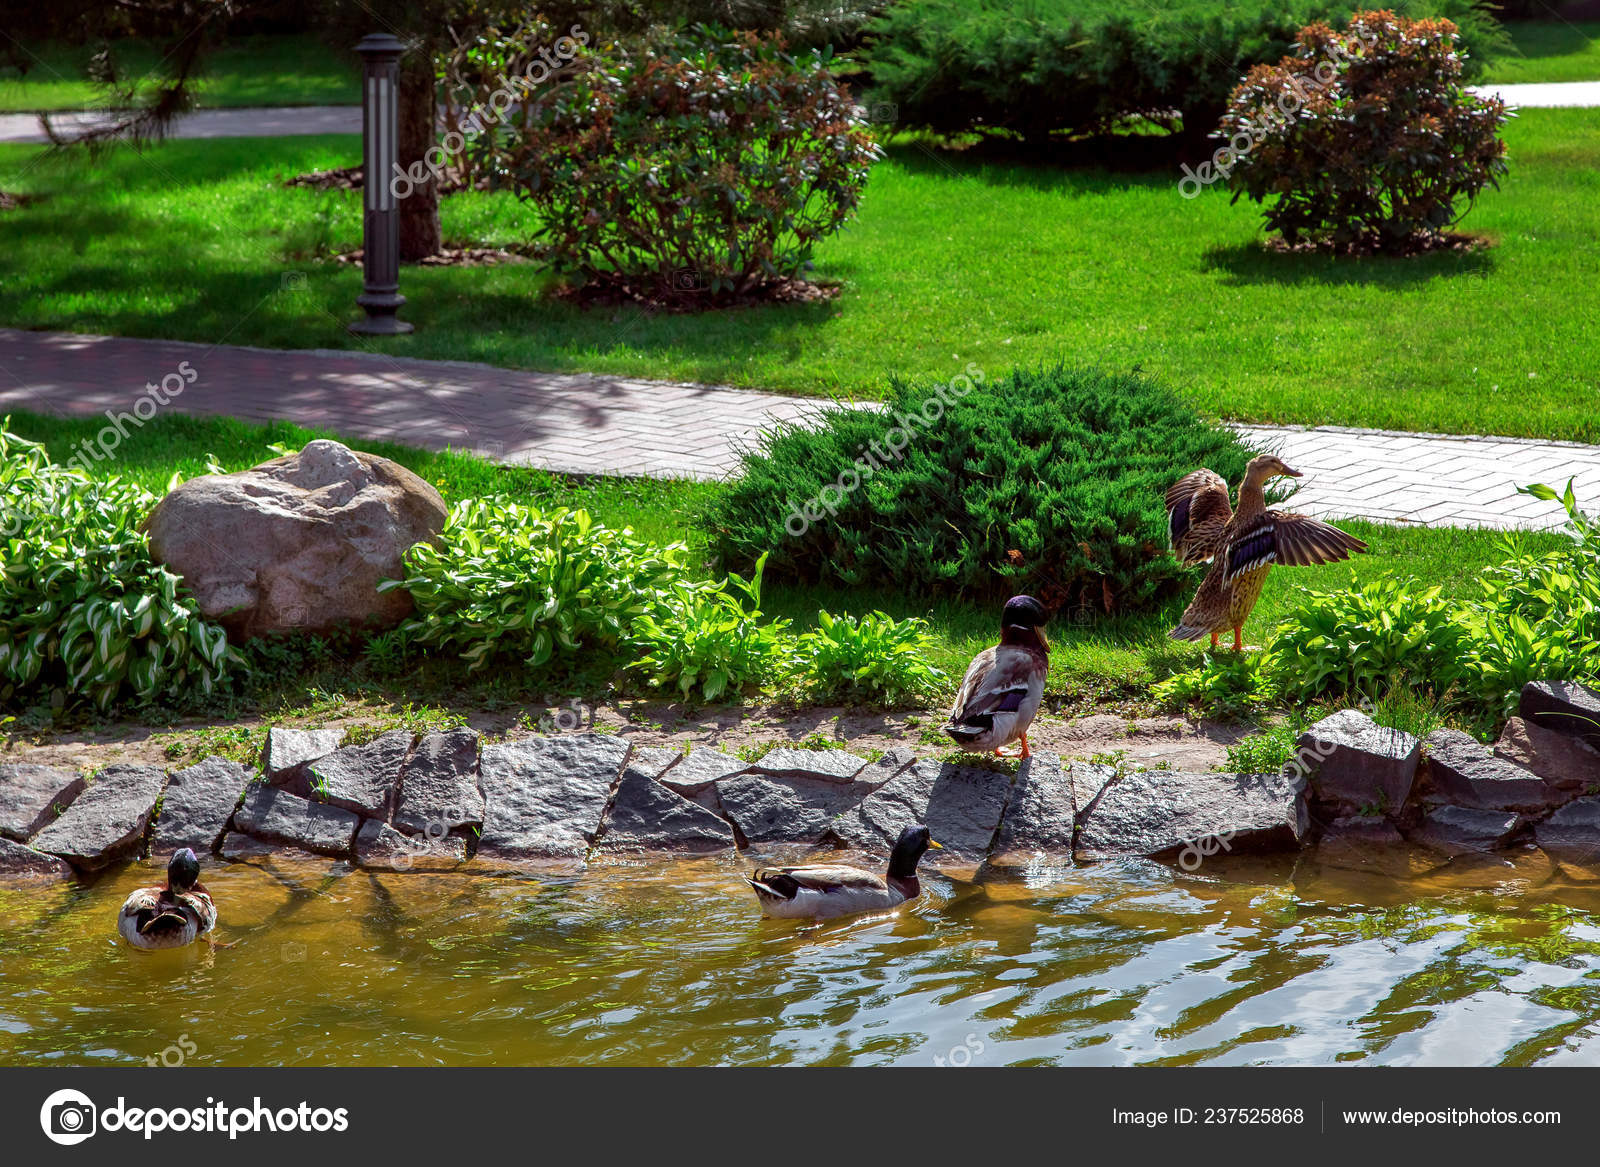 After Swimming In The Pond Ducks Go On Land To Stroll Through The Landscape  Design Of The Park.